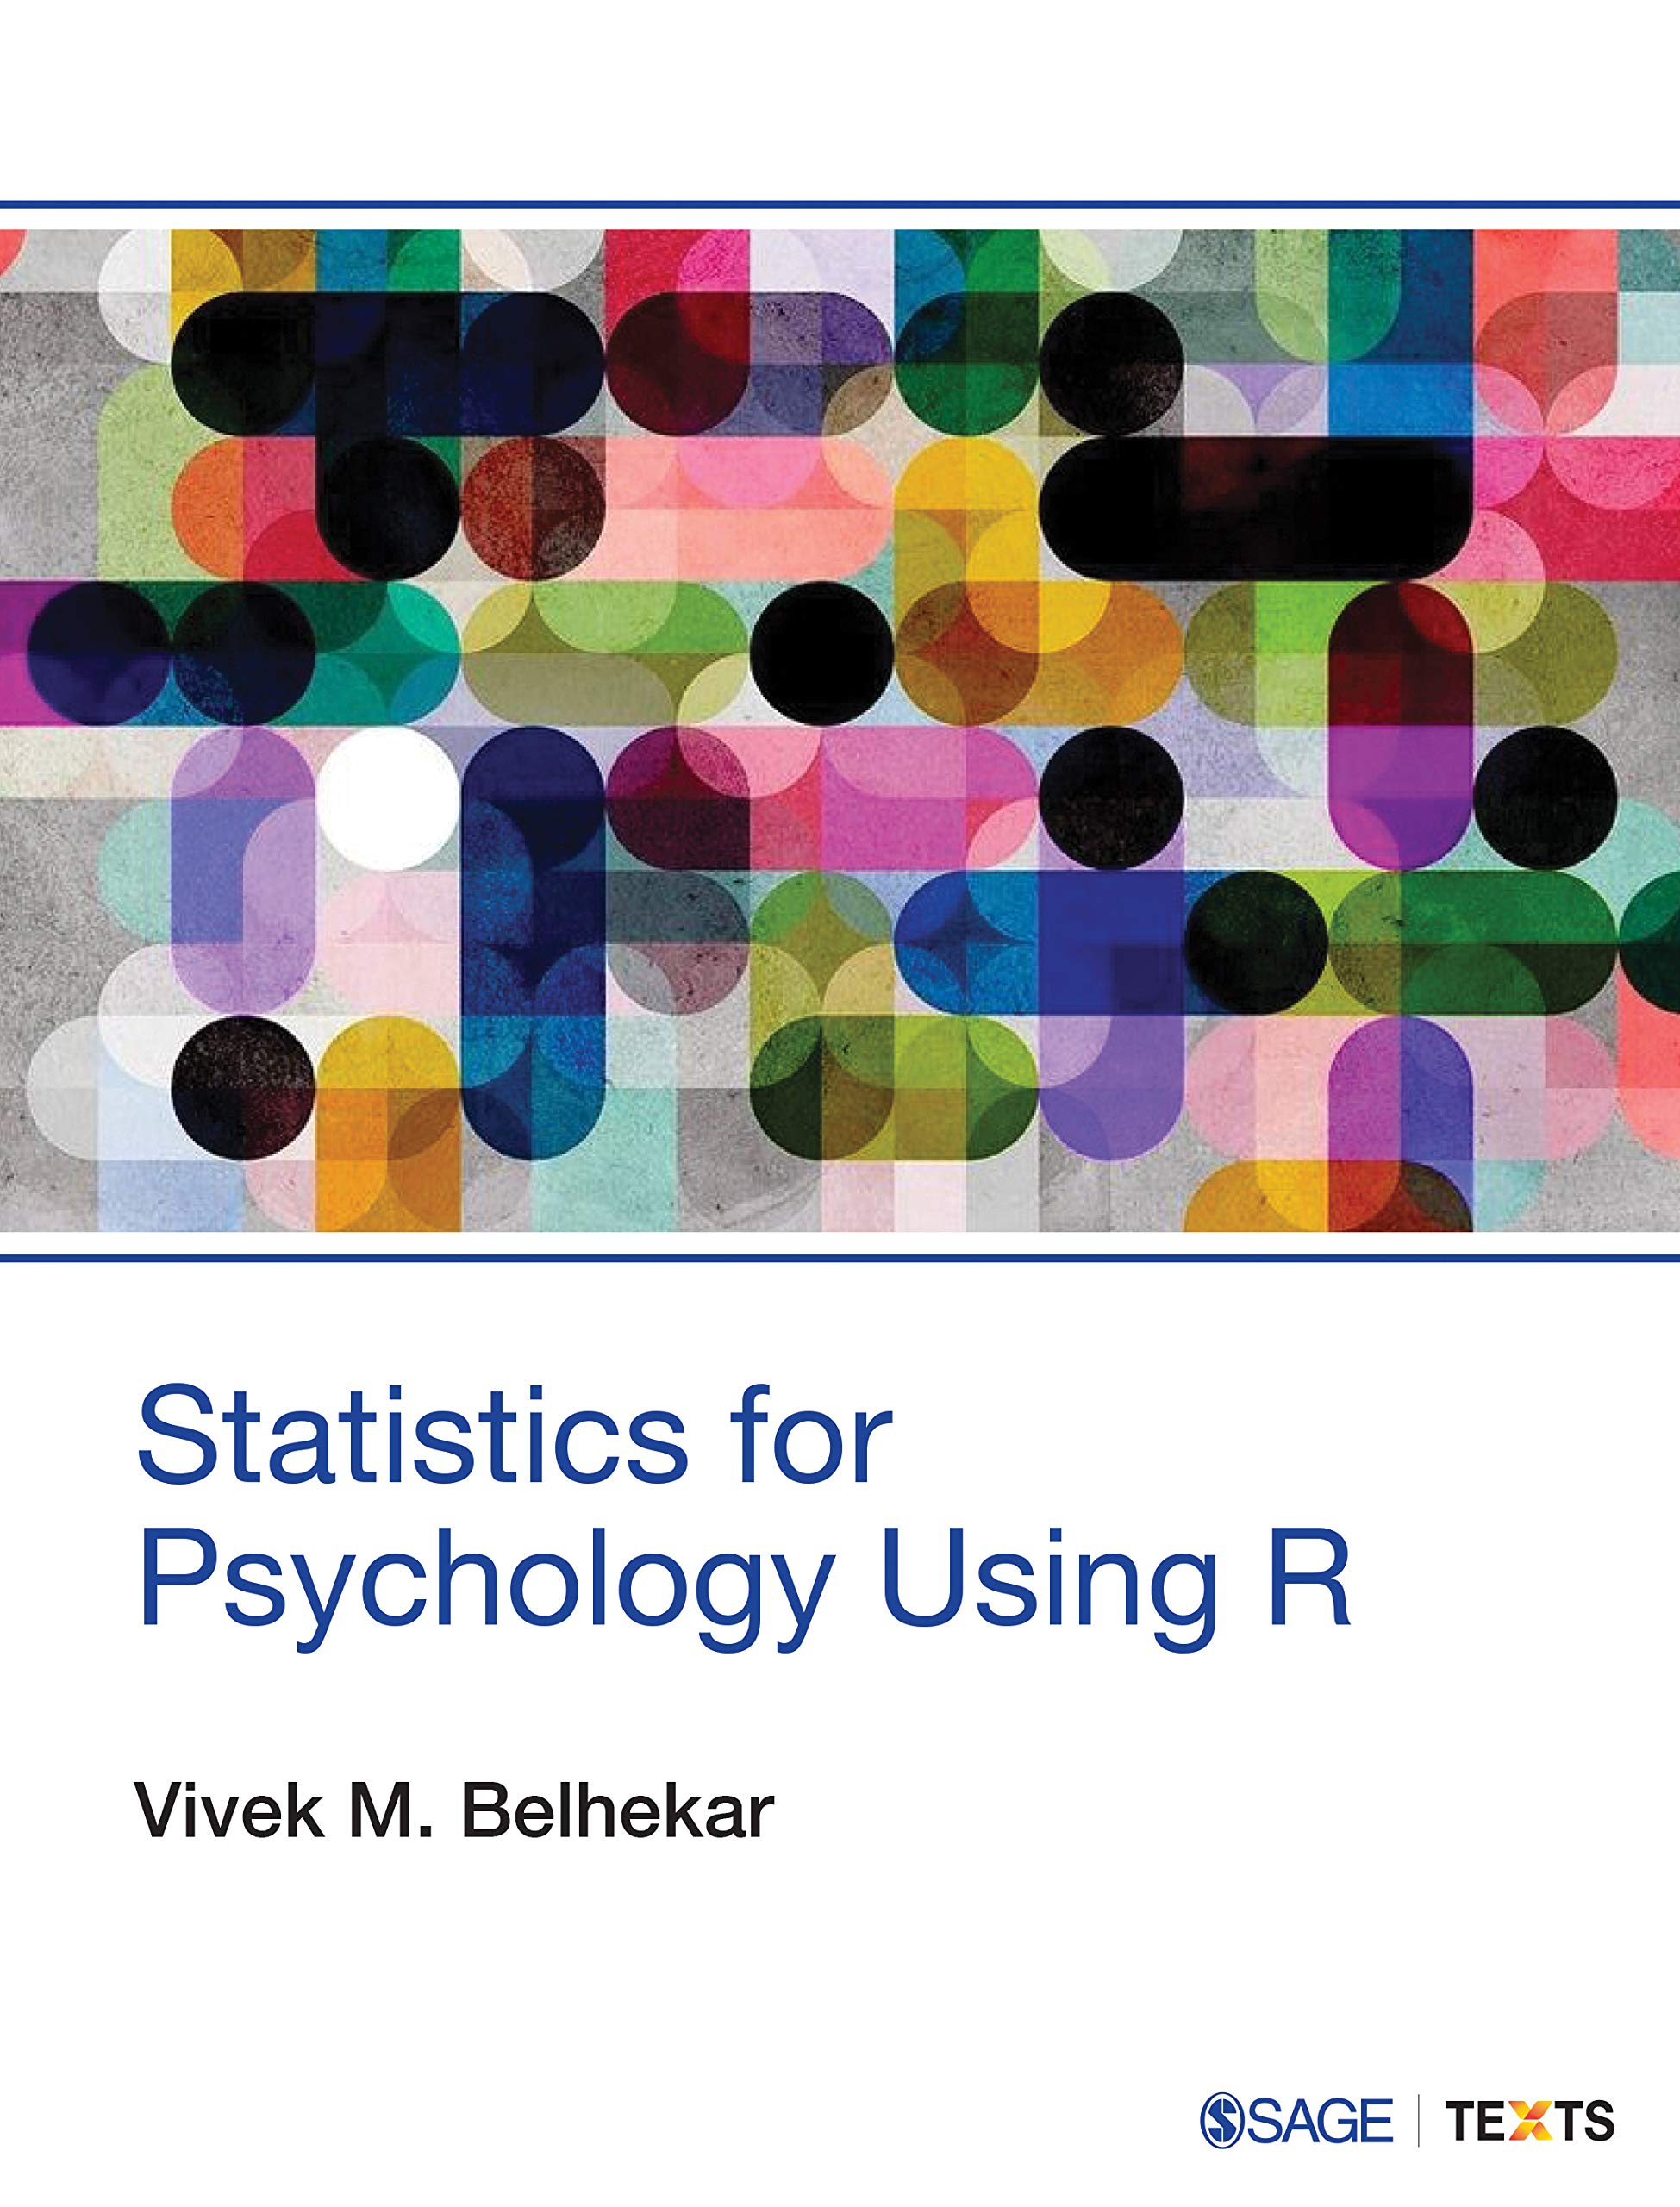 Buy Statistics for Psychology Using R Book Online at Low